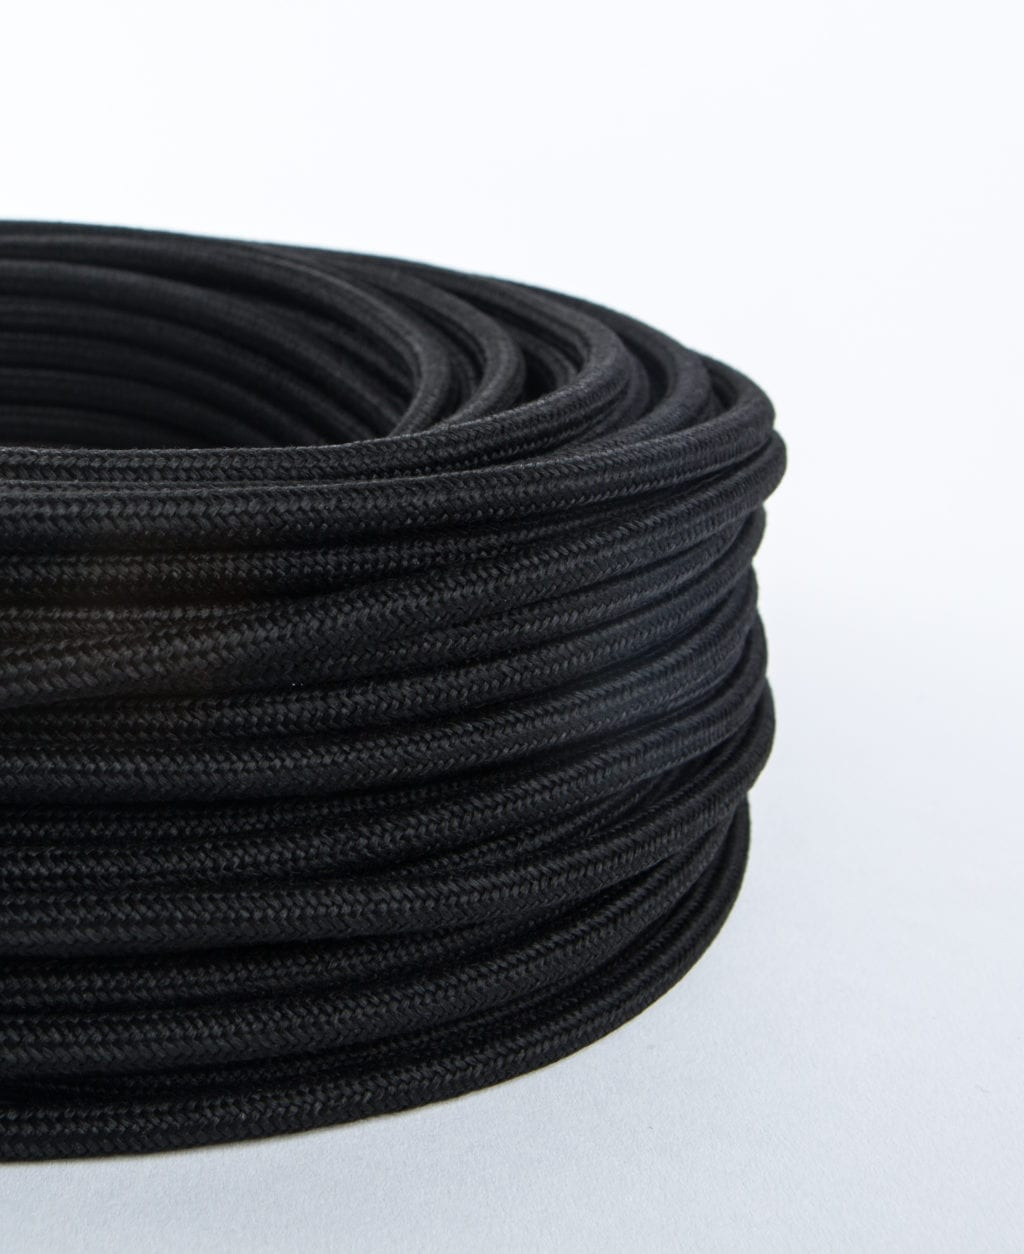 closeup of matt black fabric cable coil against white background